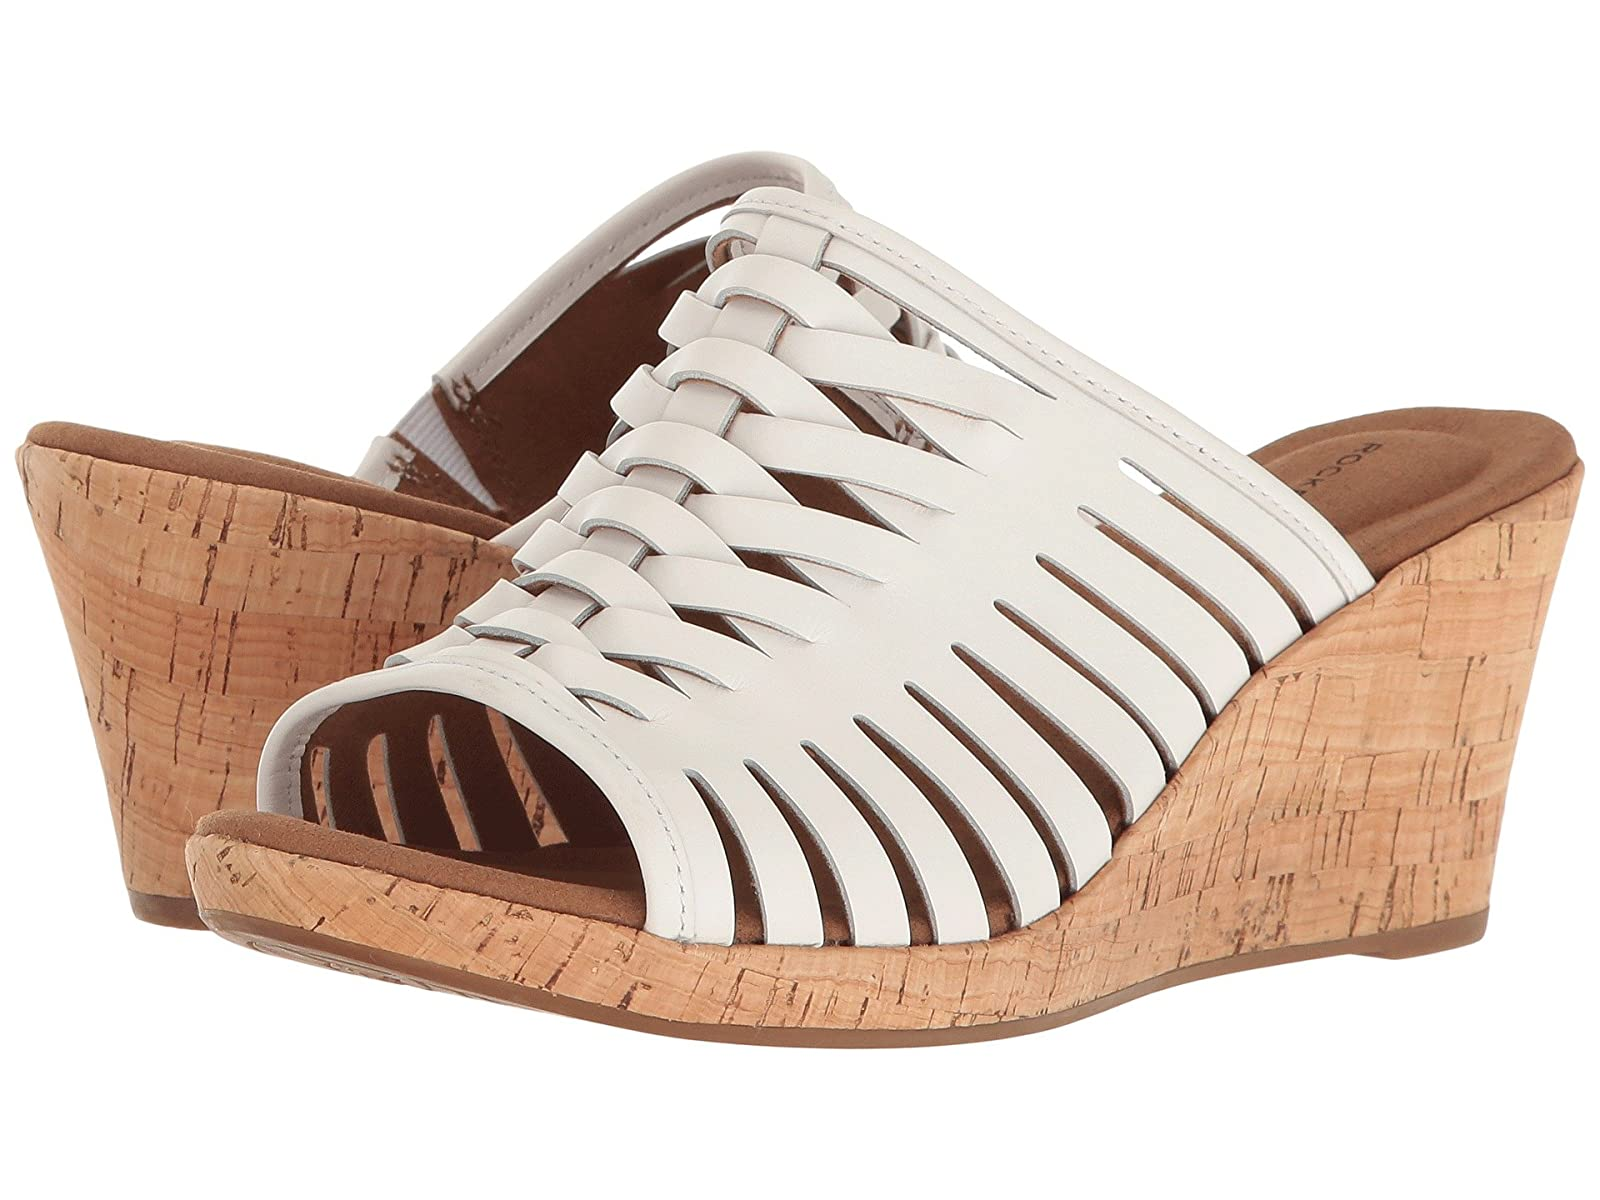 Rockport Briah FishermanCheap and distinctive eye-catching shoes